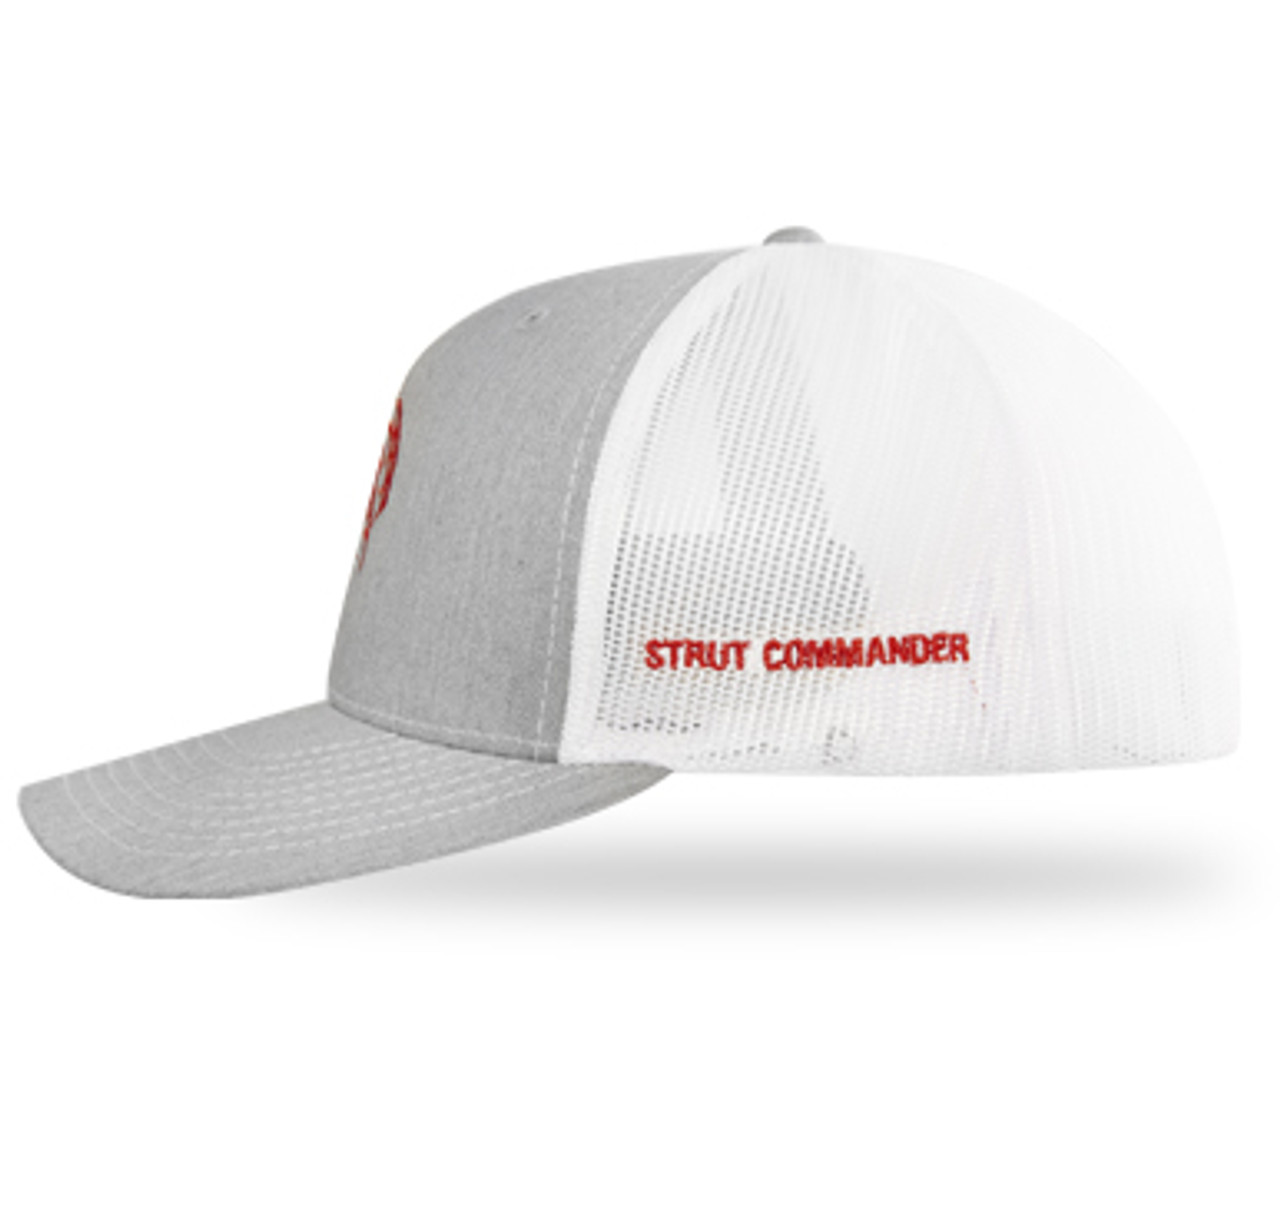 "Heather grey front panels with white mesh back panels and ""Strut Commander"" embroidered in red on the side."